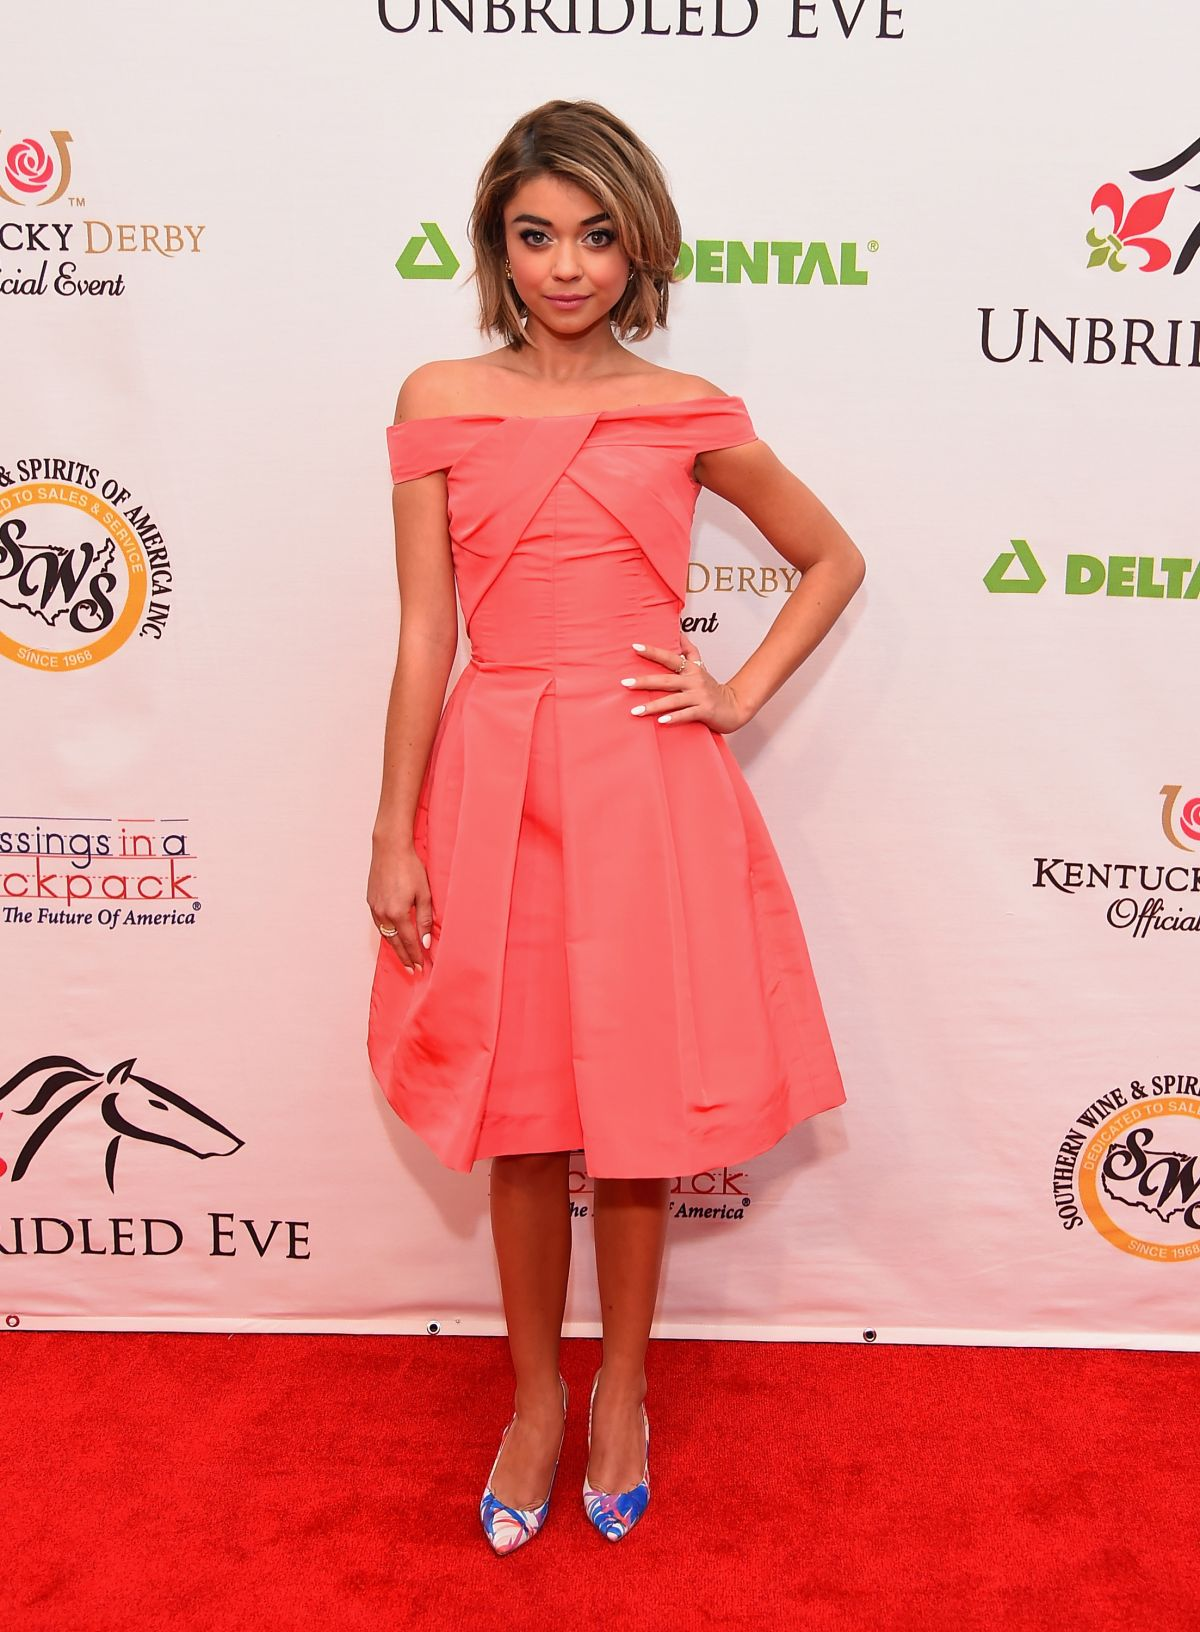 sarah-hyland-at-141st-kentucky-derby-unbridled-eve-gala_